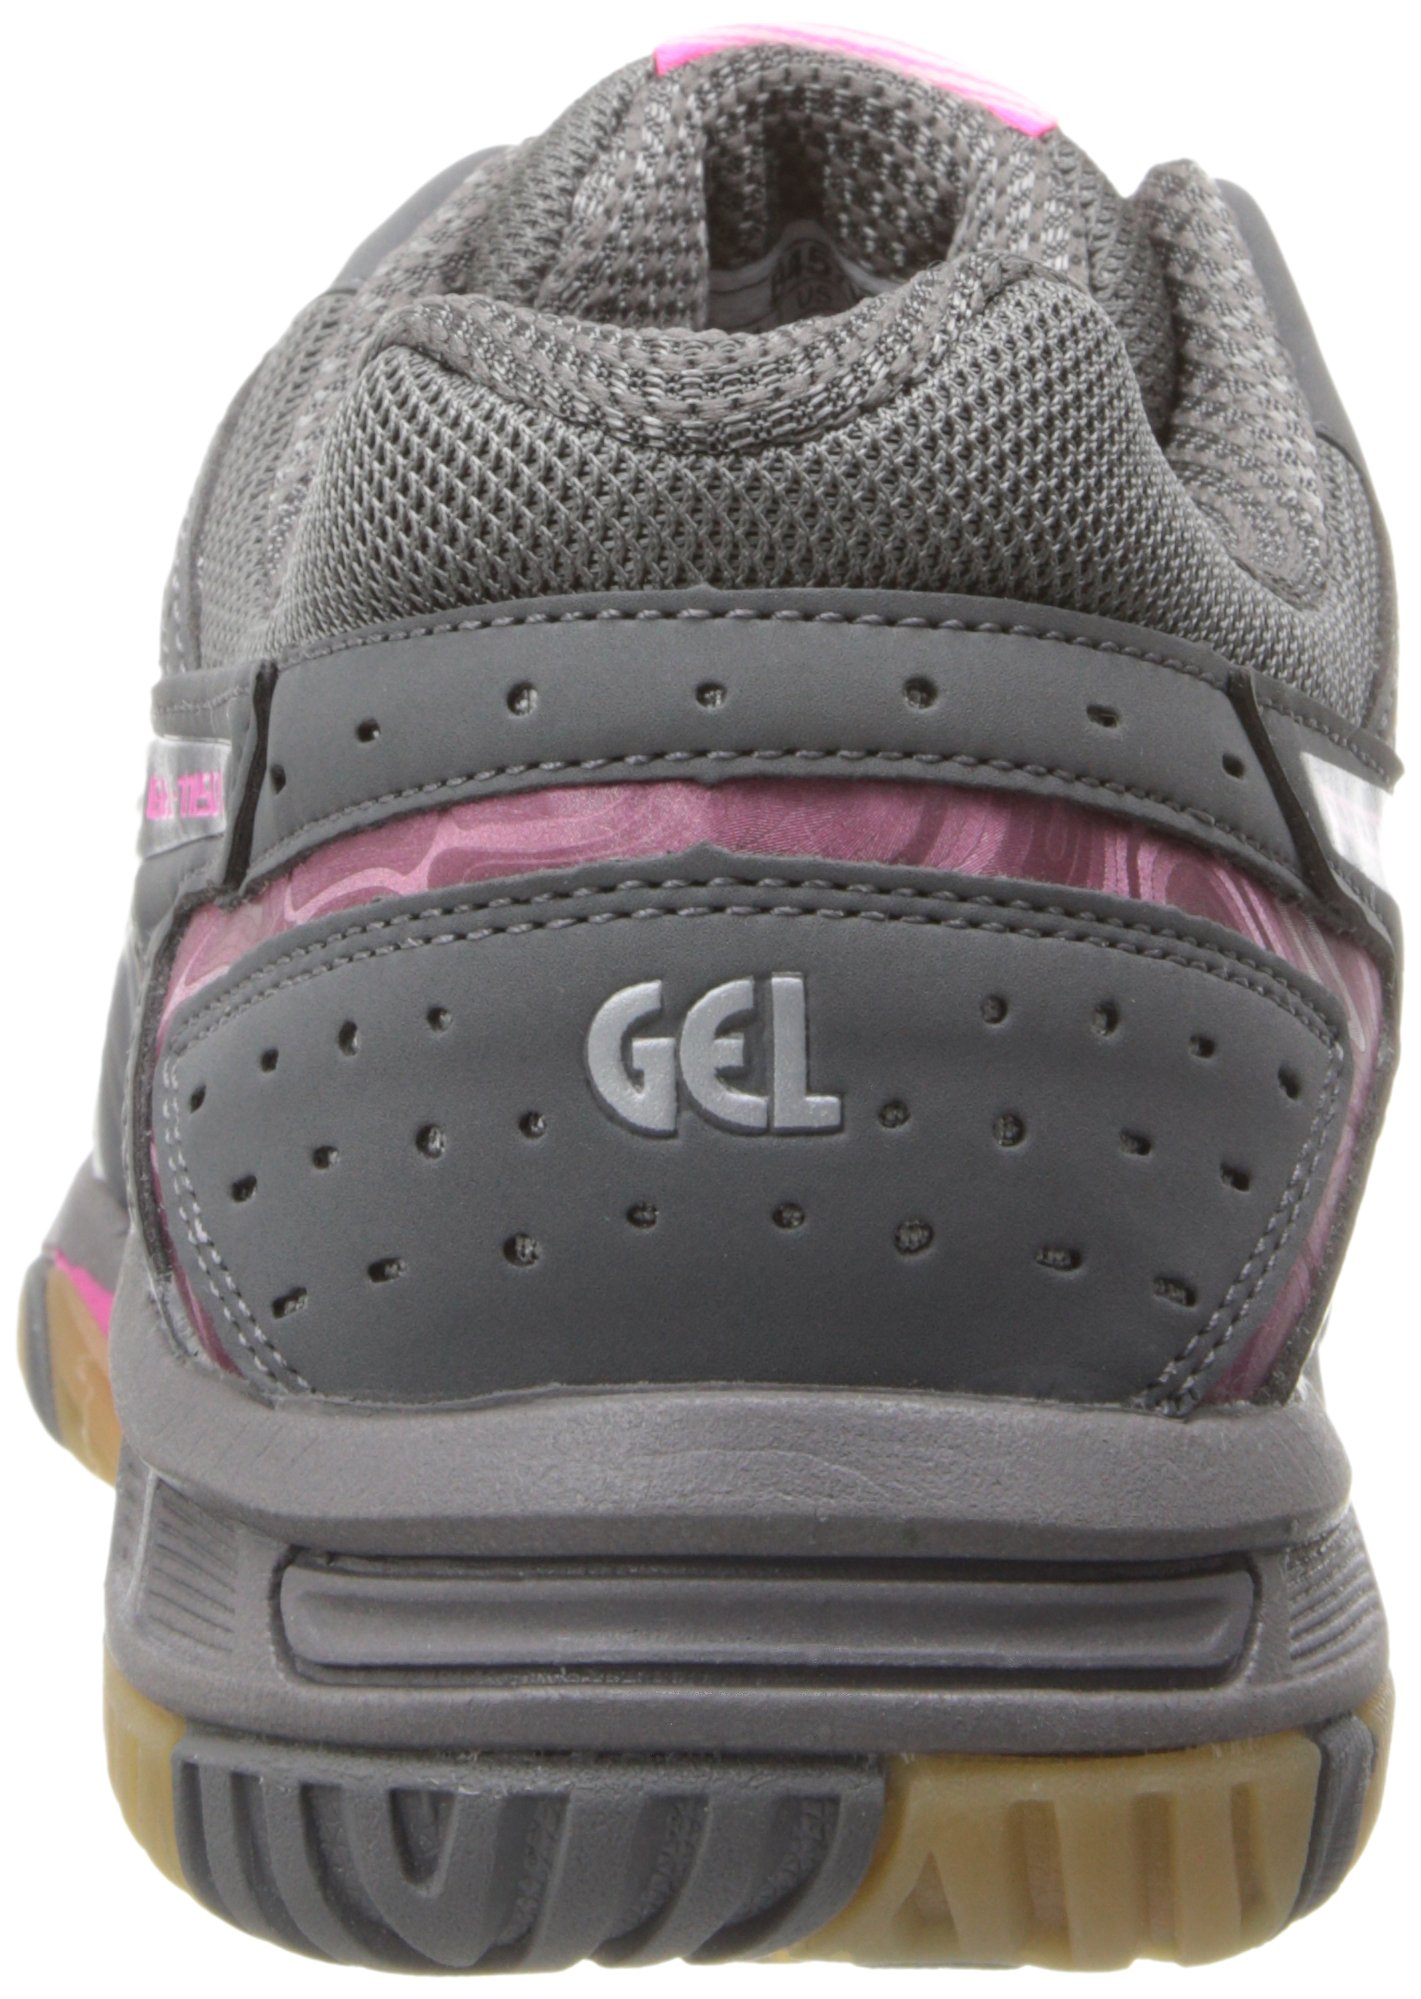 ASICS Women's Gel 1150V Volley Ball Shoe,Smoke/Knock Out Pink/Silver,8 M US by ASICS (Image #2)